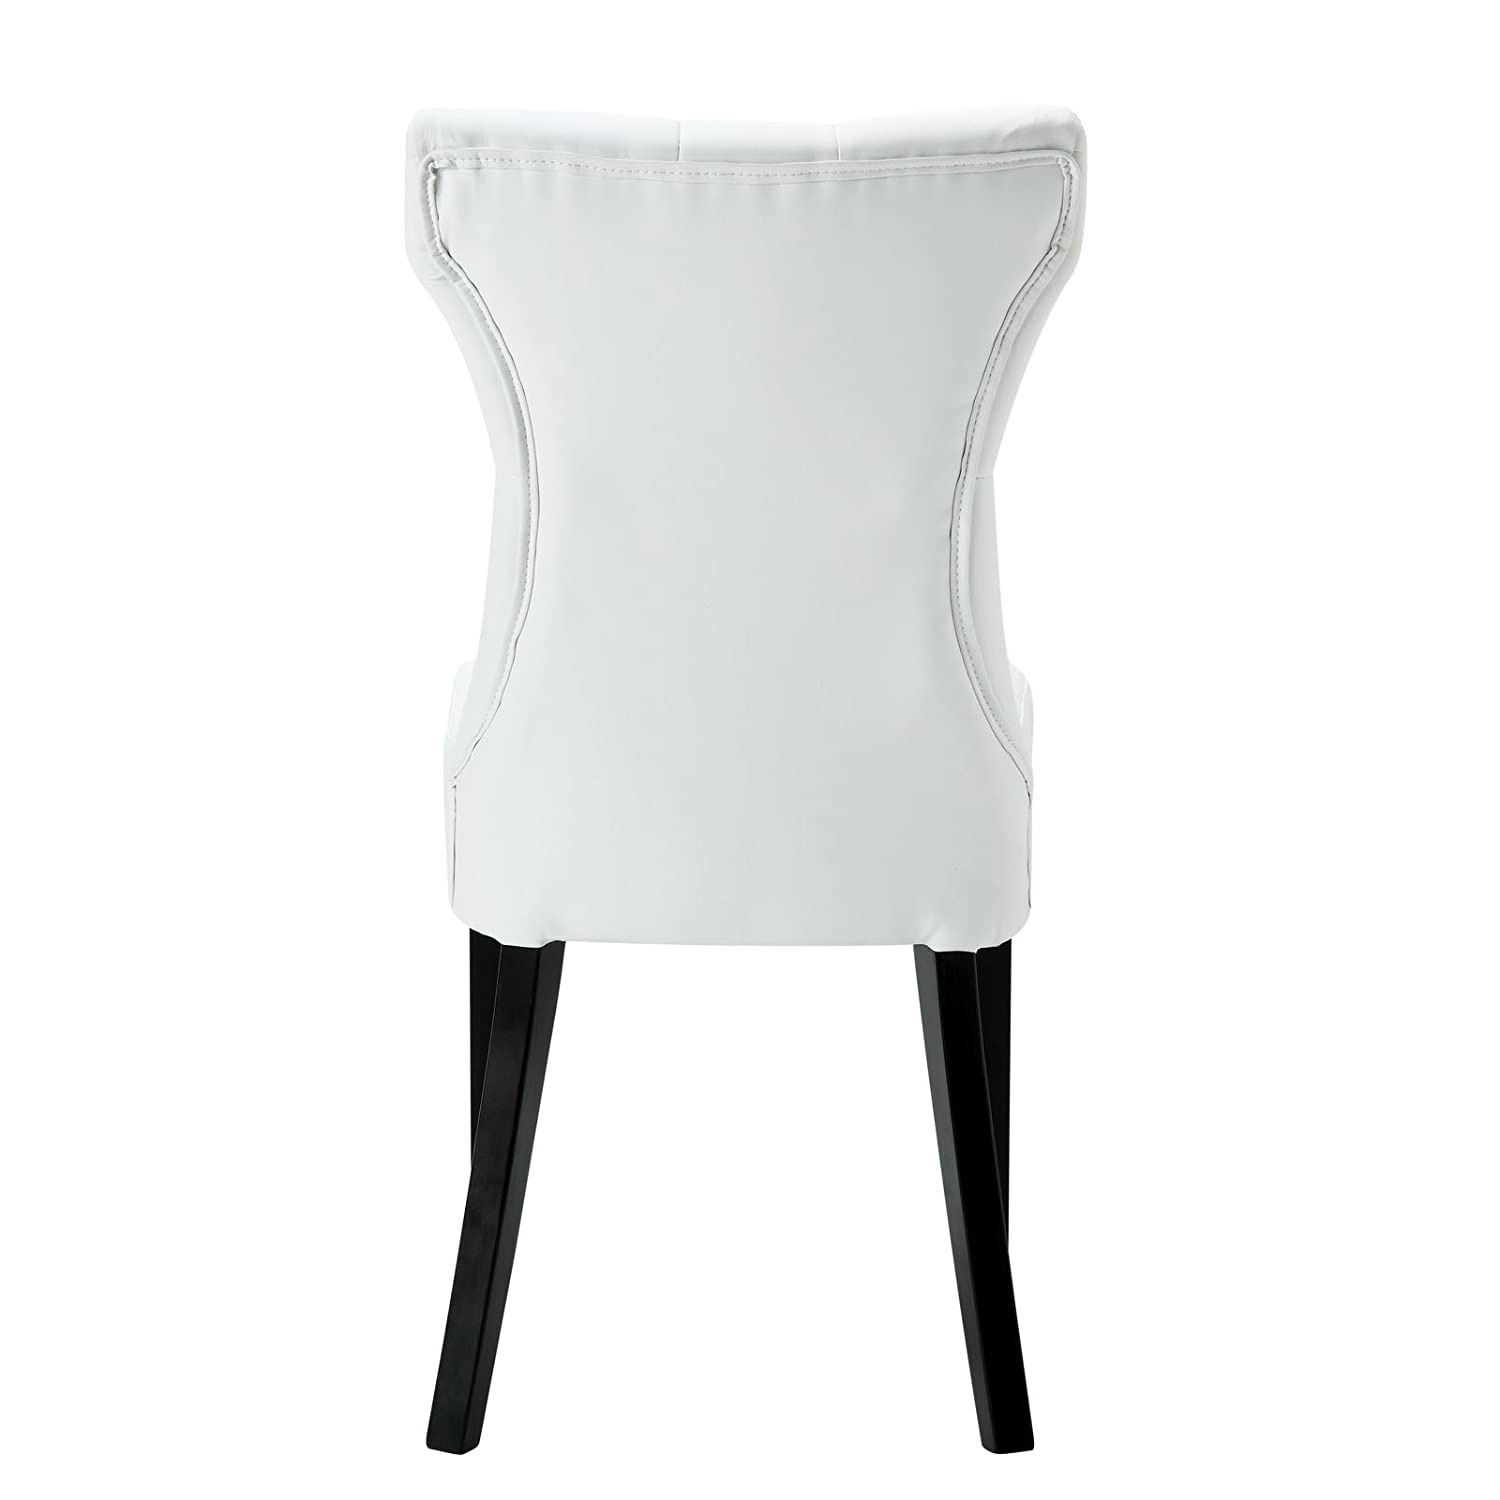 s products usa chair bc white wholesale pvc deco product dining chairs moe